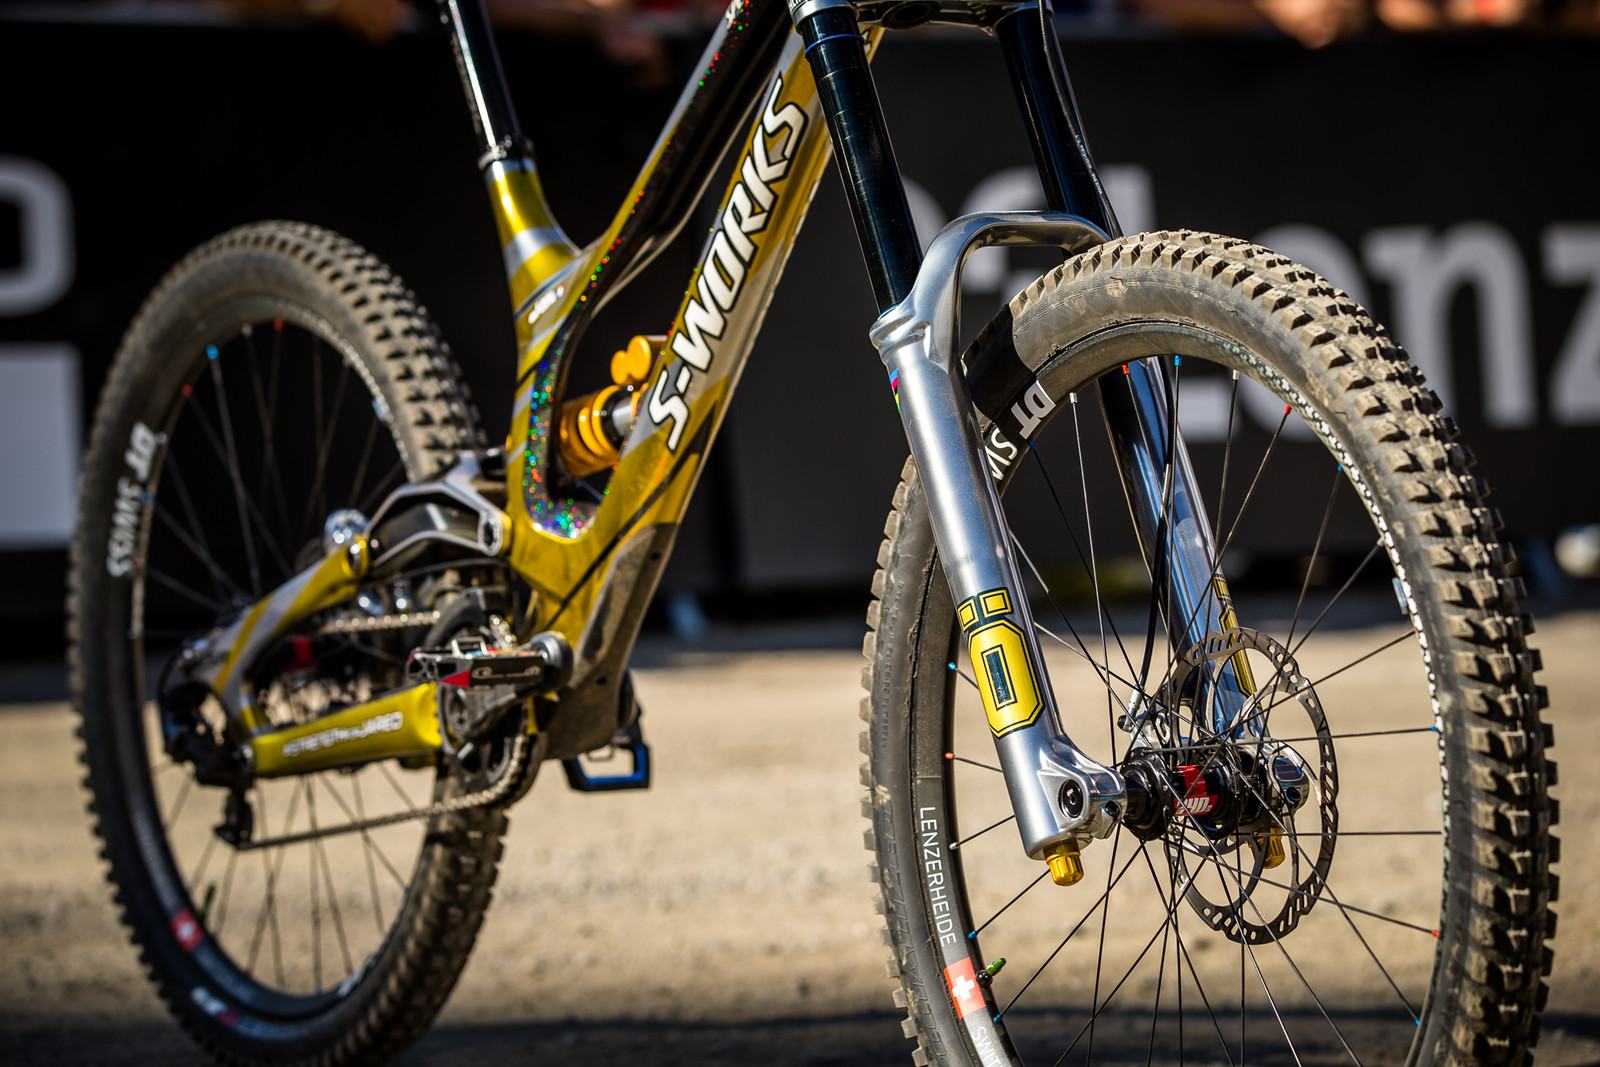 Silver Polished Ohlins DH Race Fork - WINNING BIKE - Loic Bruni's Specialized Demo - Mountain Biking Pictures - Vital MTB